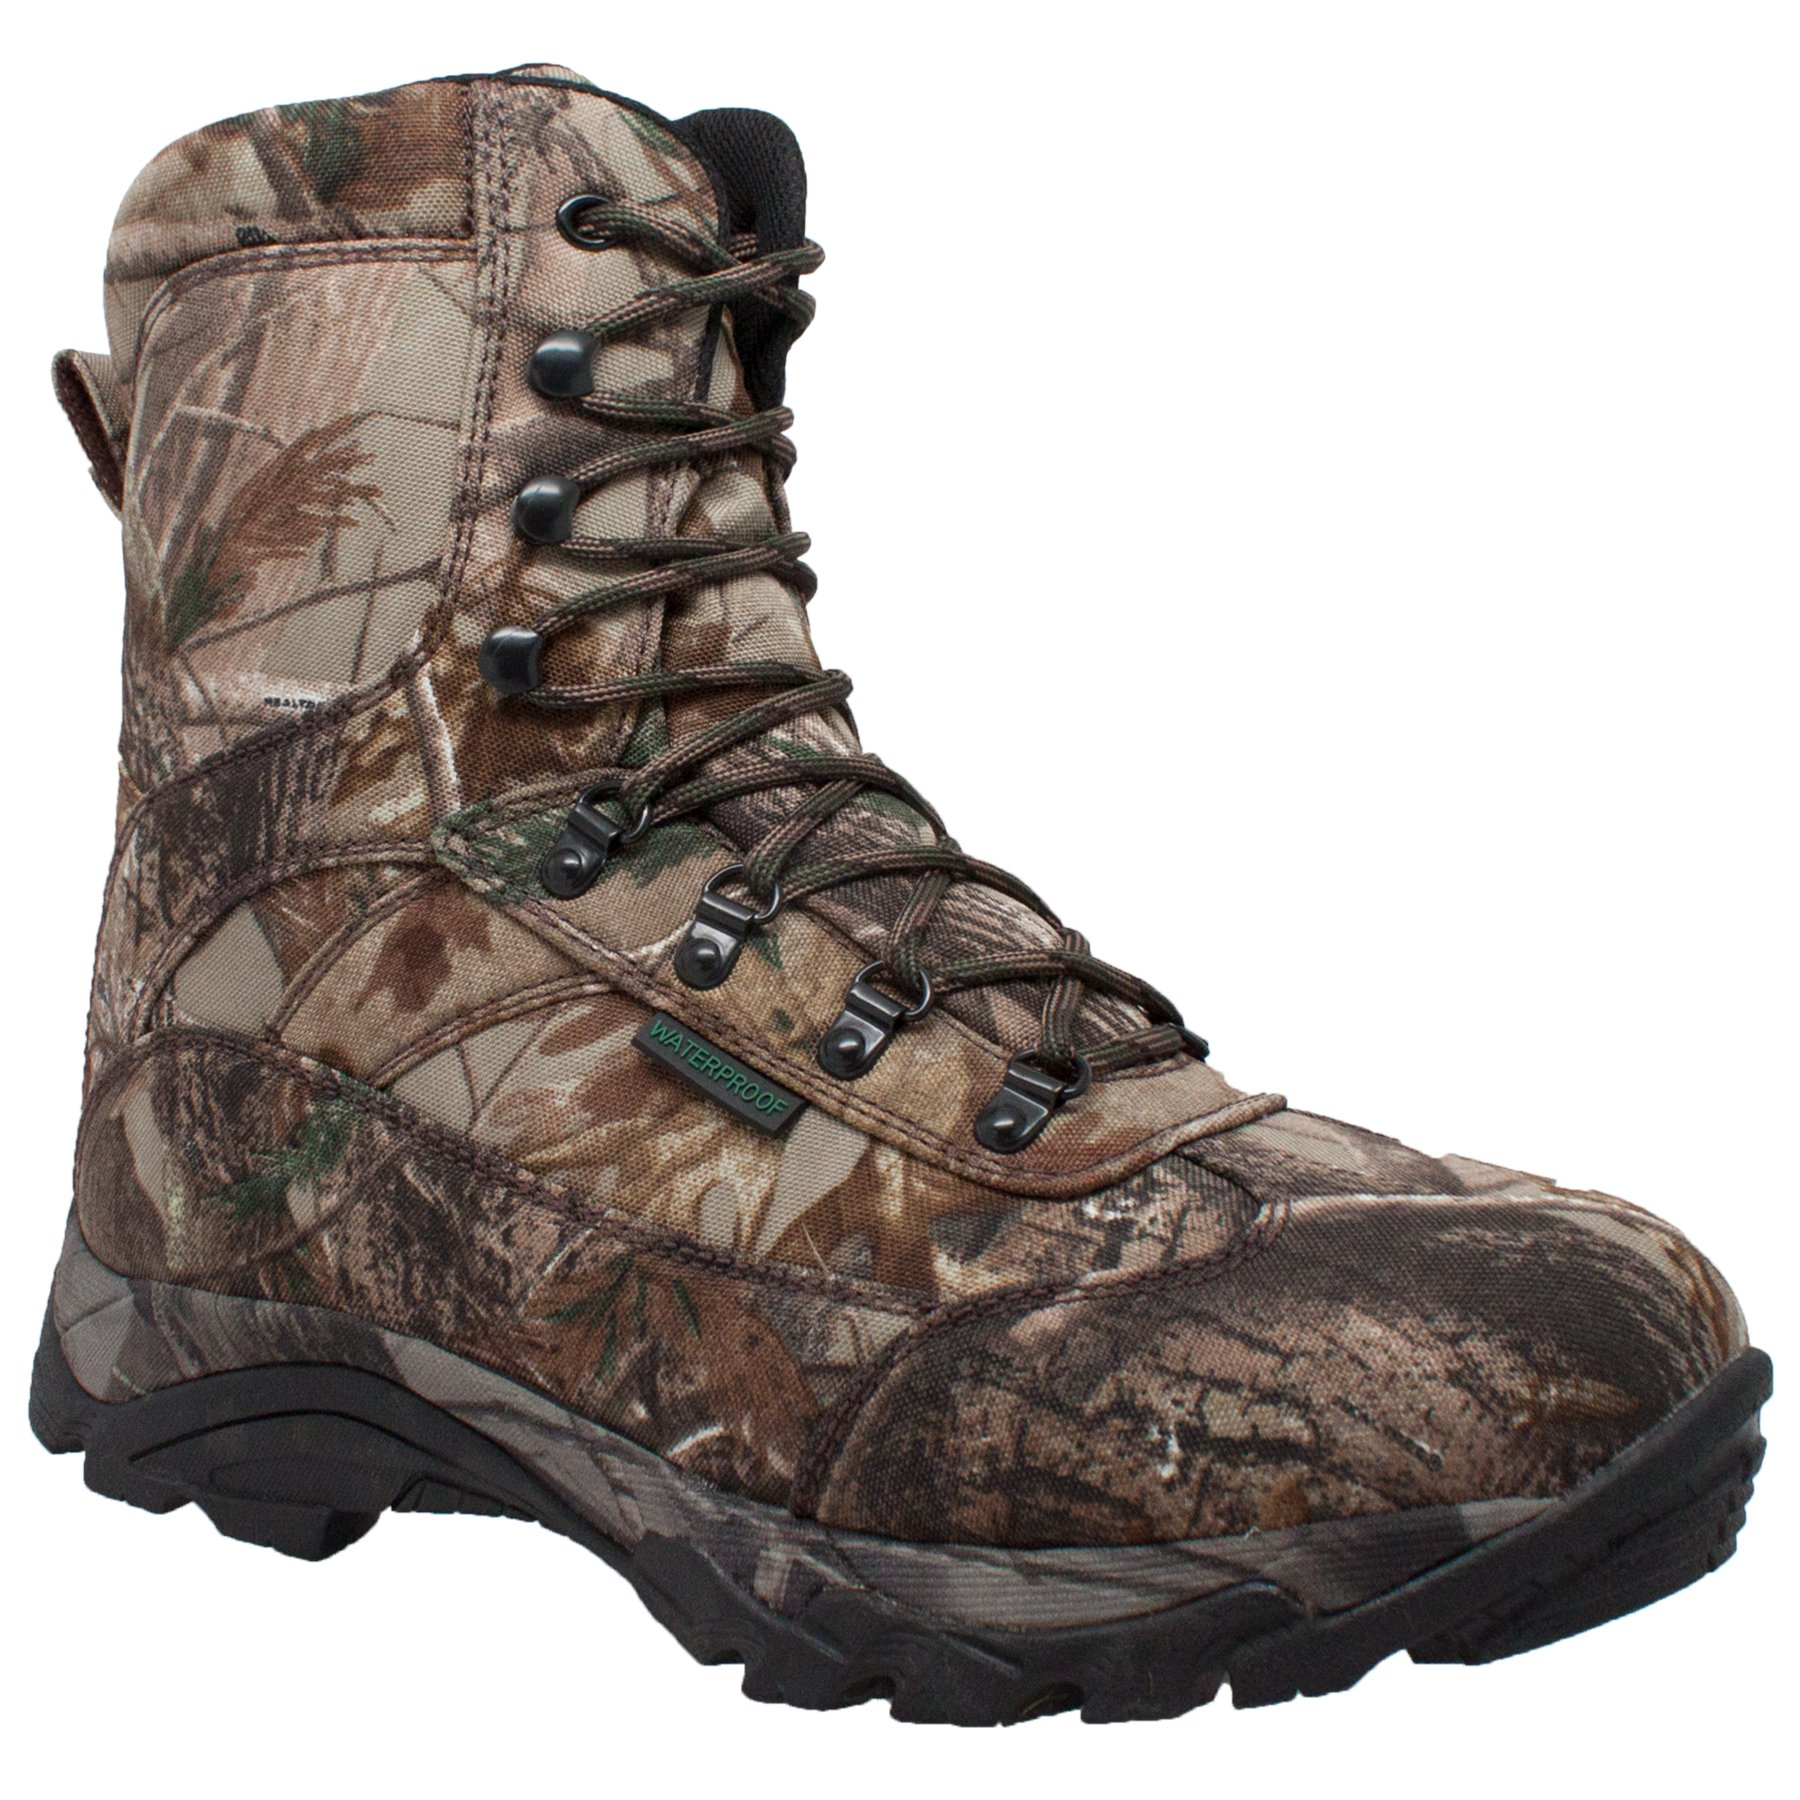 Adtec Men's 10'' Waterproof Real Tree 800g Camo Tan